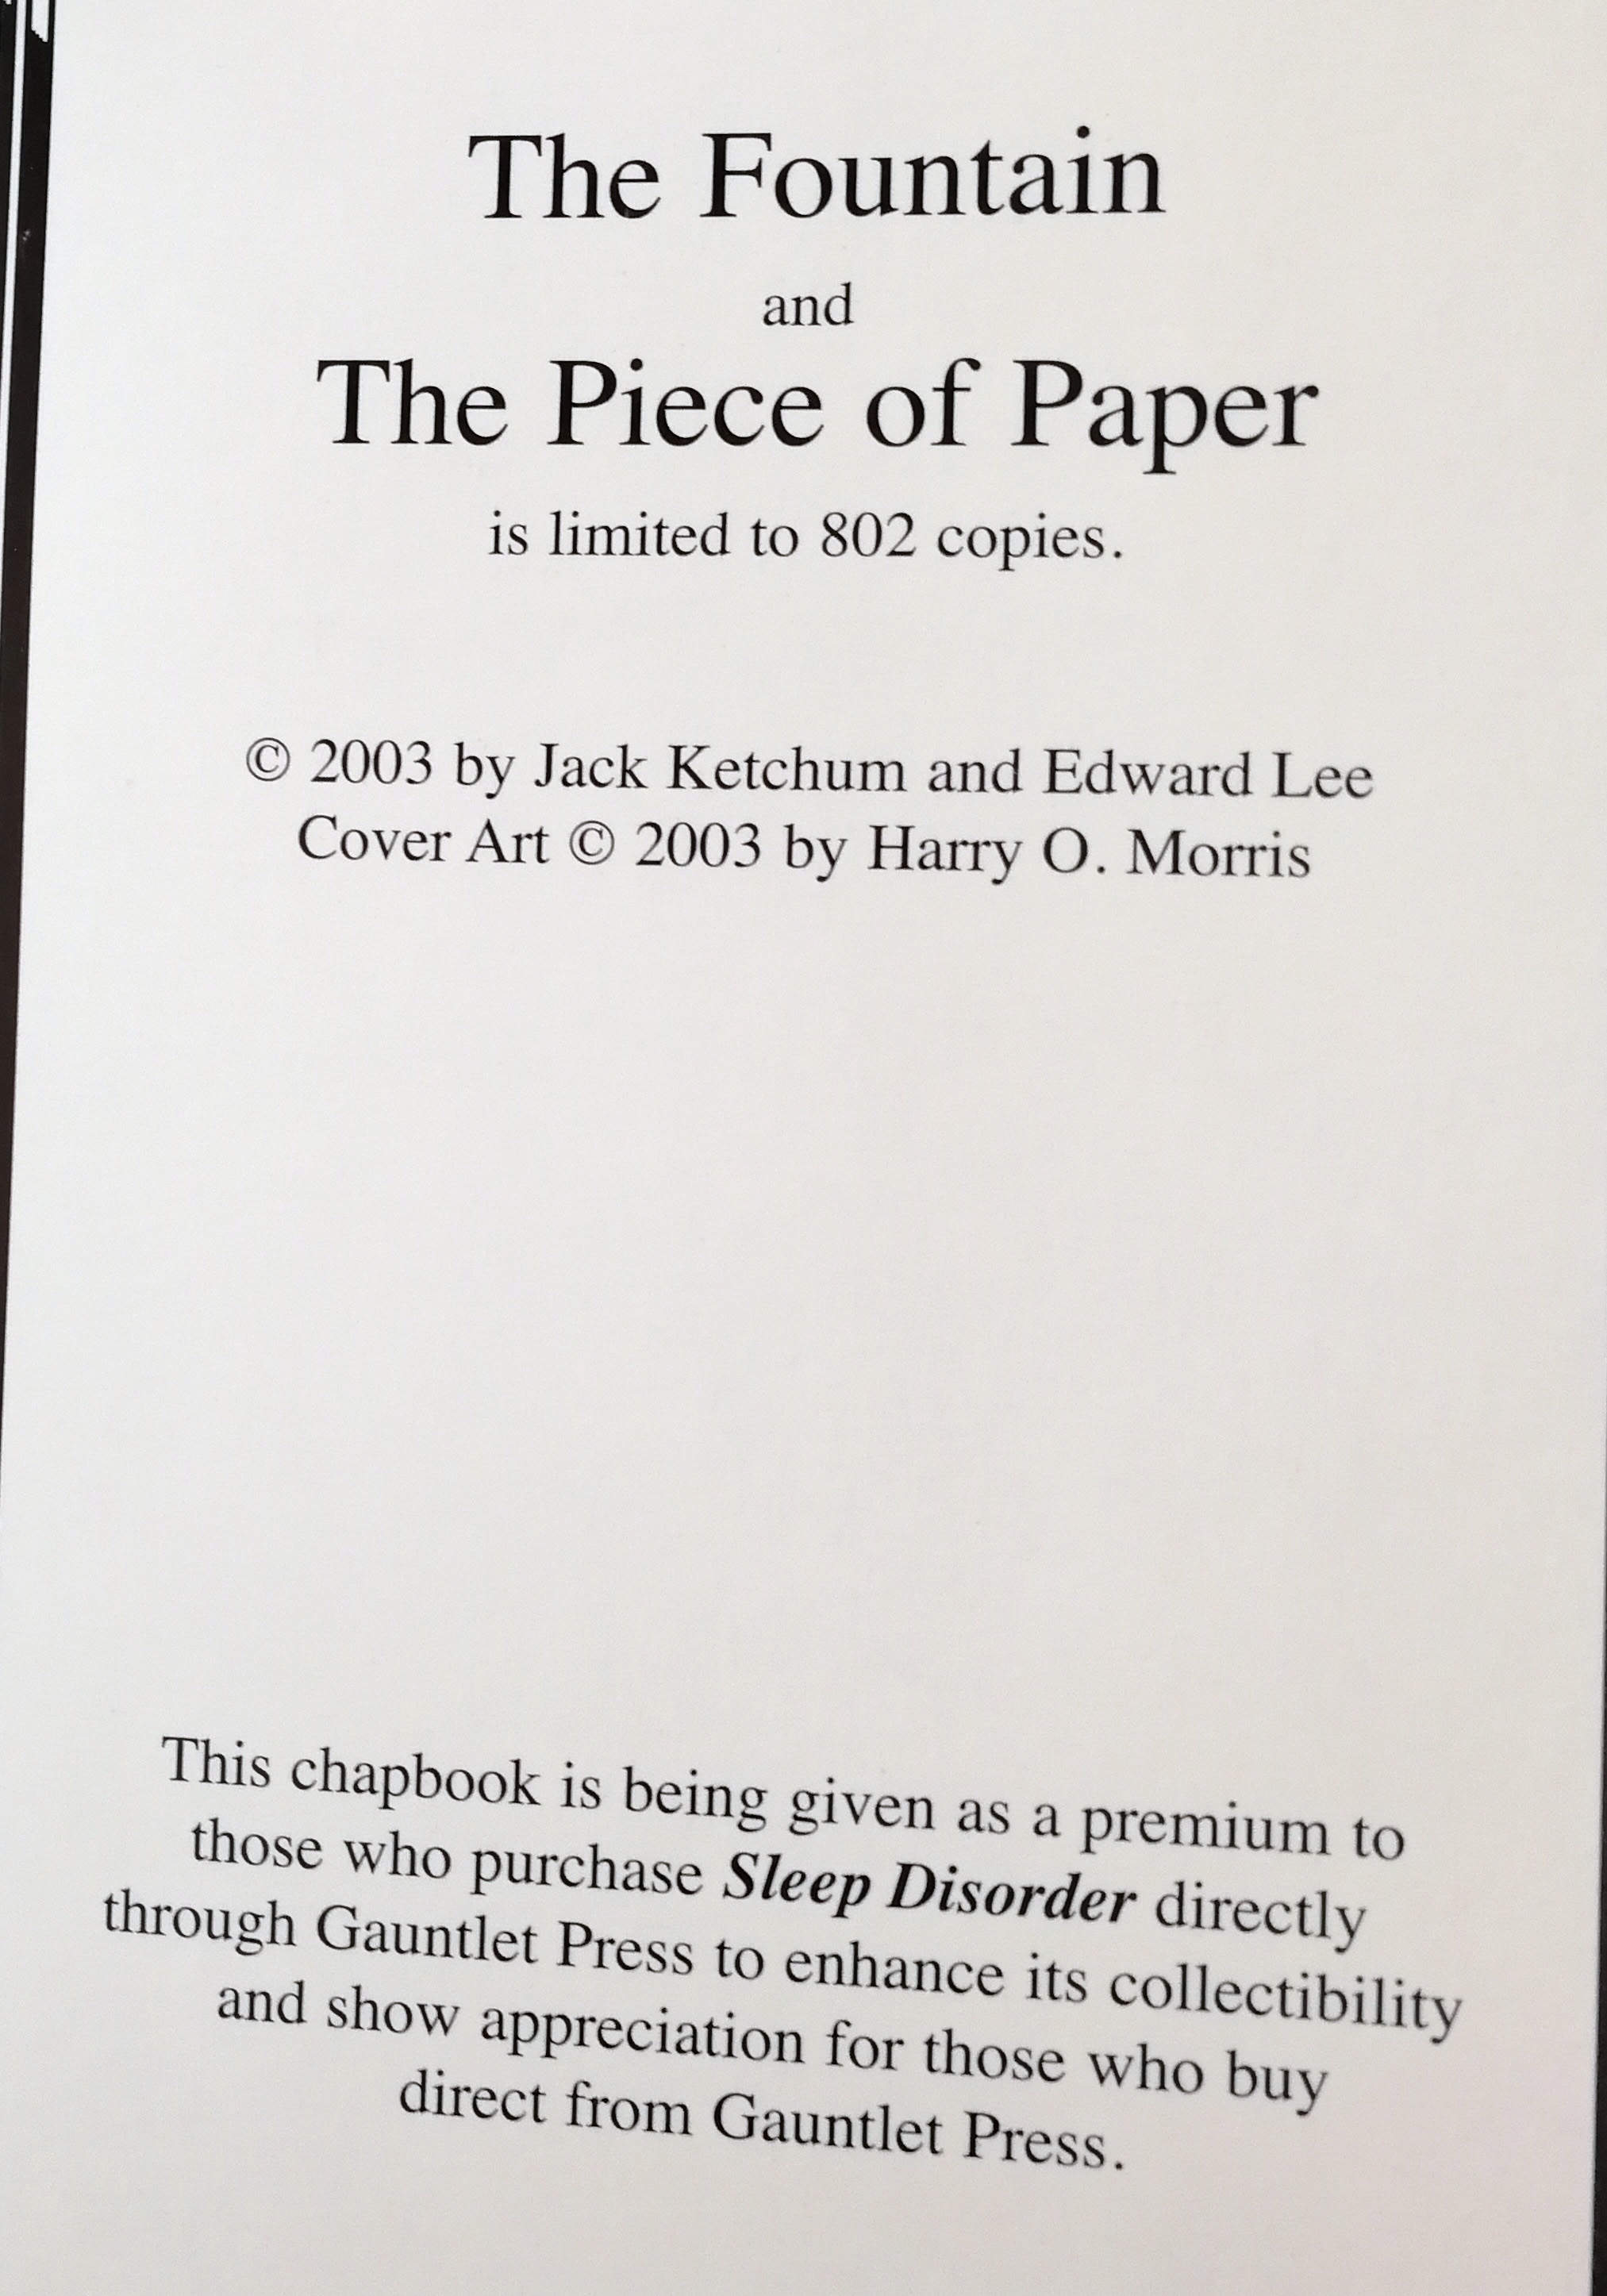 The Fountain / The Piece Of Paper Limited Edition